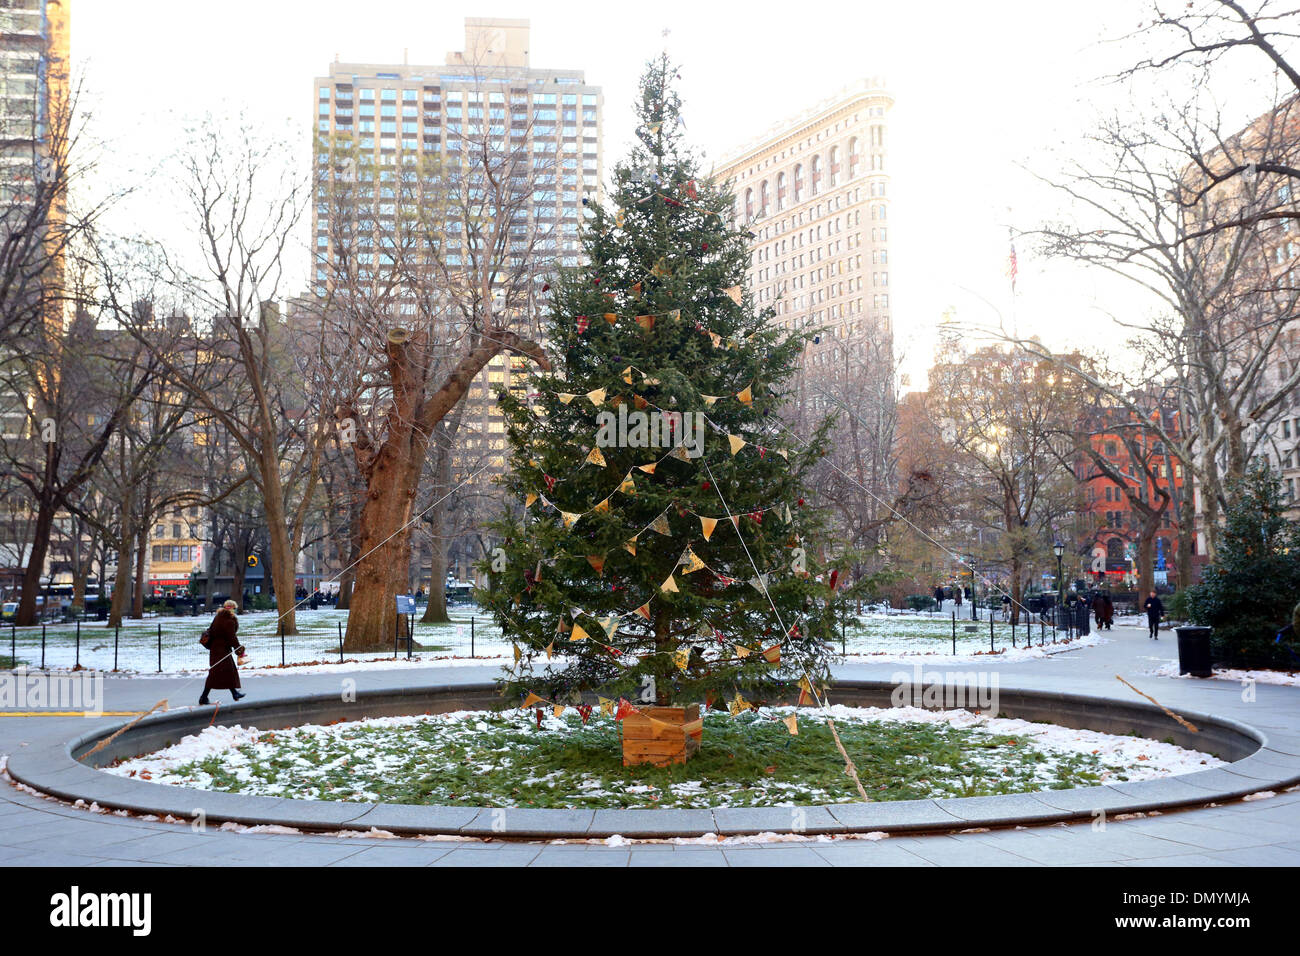 A Christmas Tree In Madison Square Park, New York City